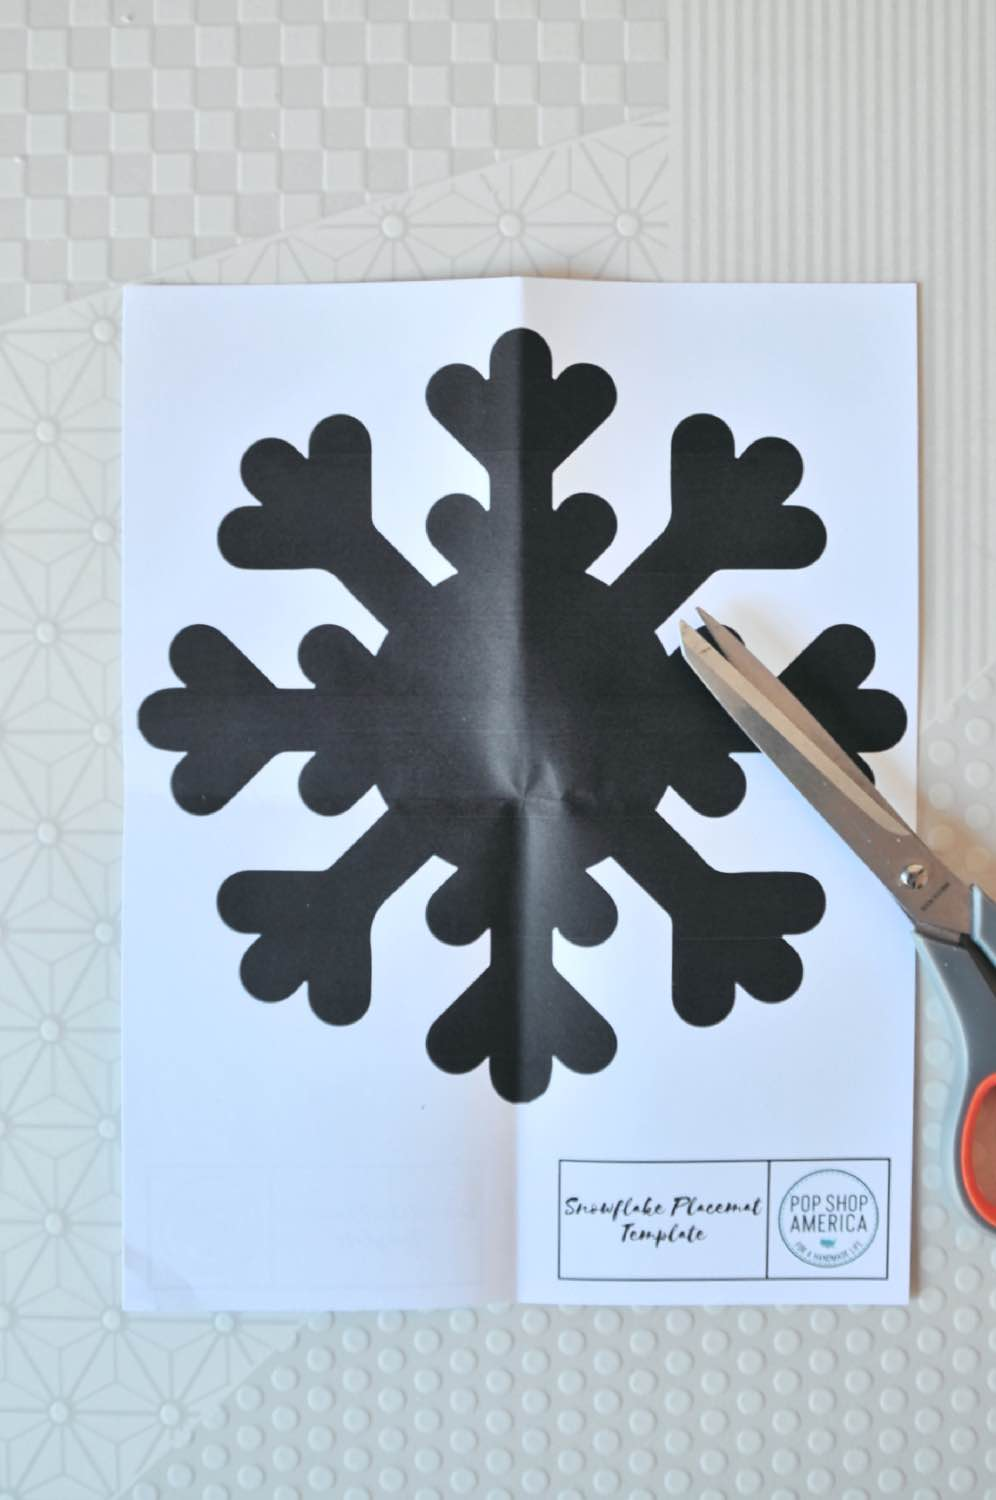 cut out the snowflake placemat template diy pop shop america